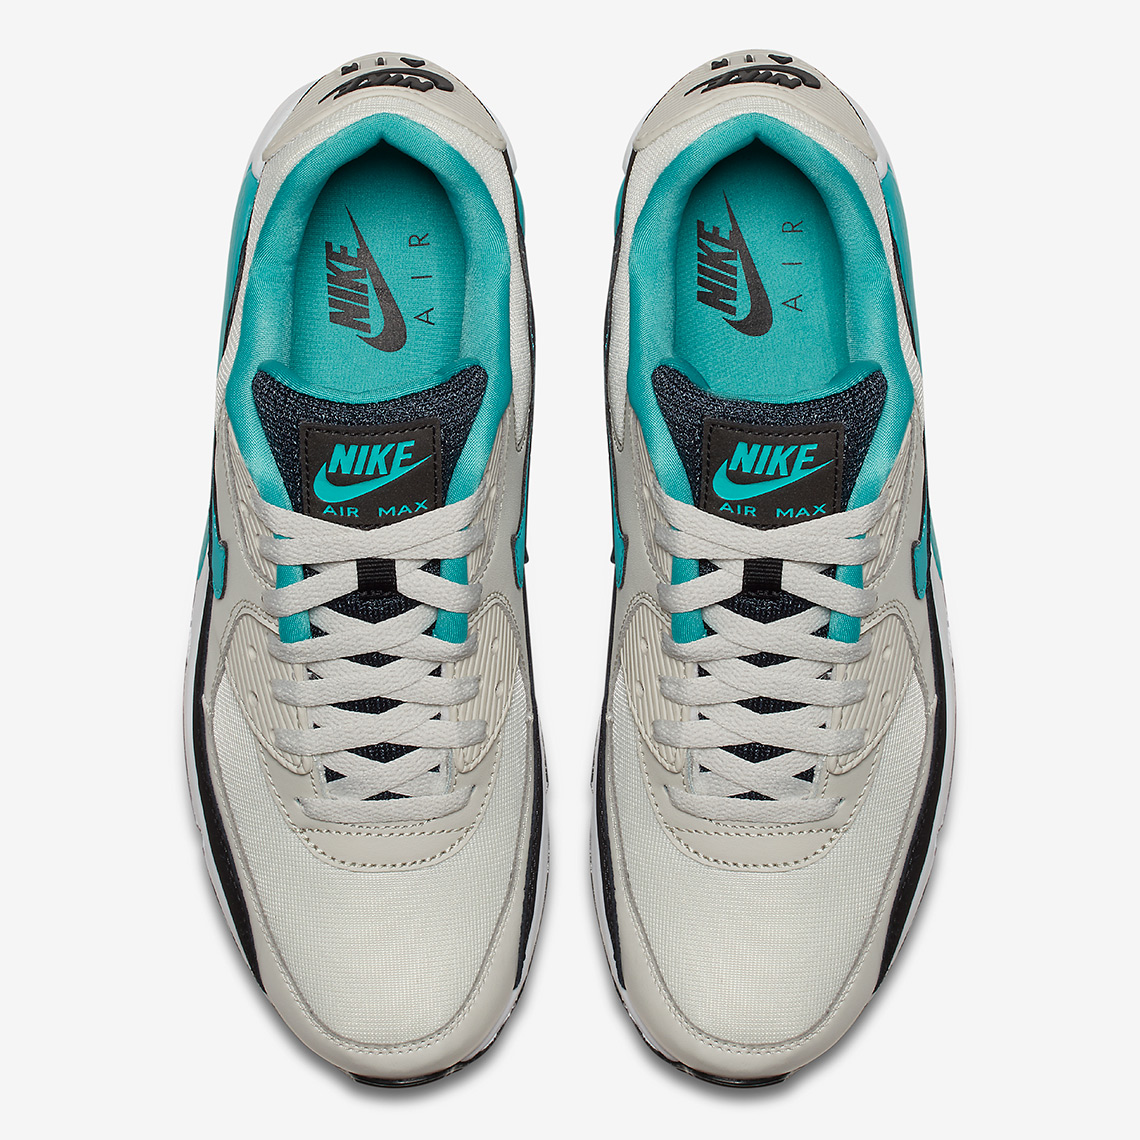 new york c4c41 6be55 Nike Air Max 90 Essential AVAILABLE AT Nike  110. Color  Light Bone Black White Sport  Turquoise Style Code  AJ1285-001. Advertisement. Advertisement